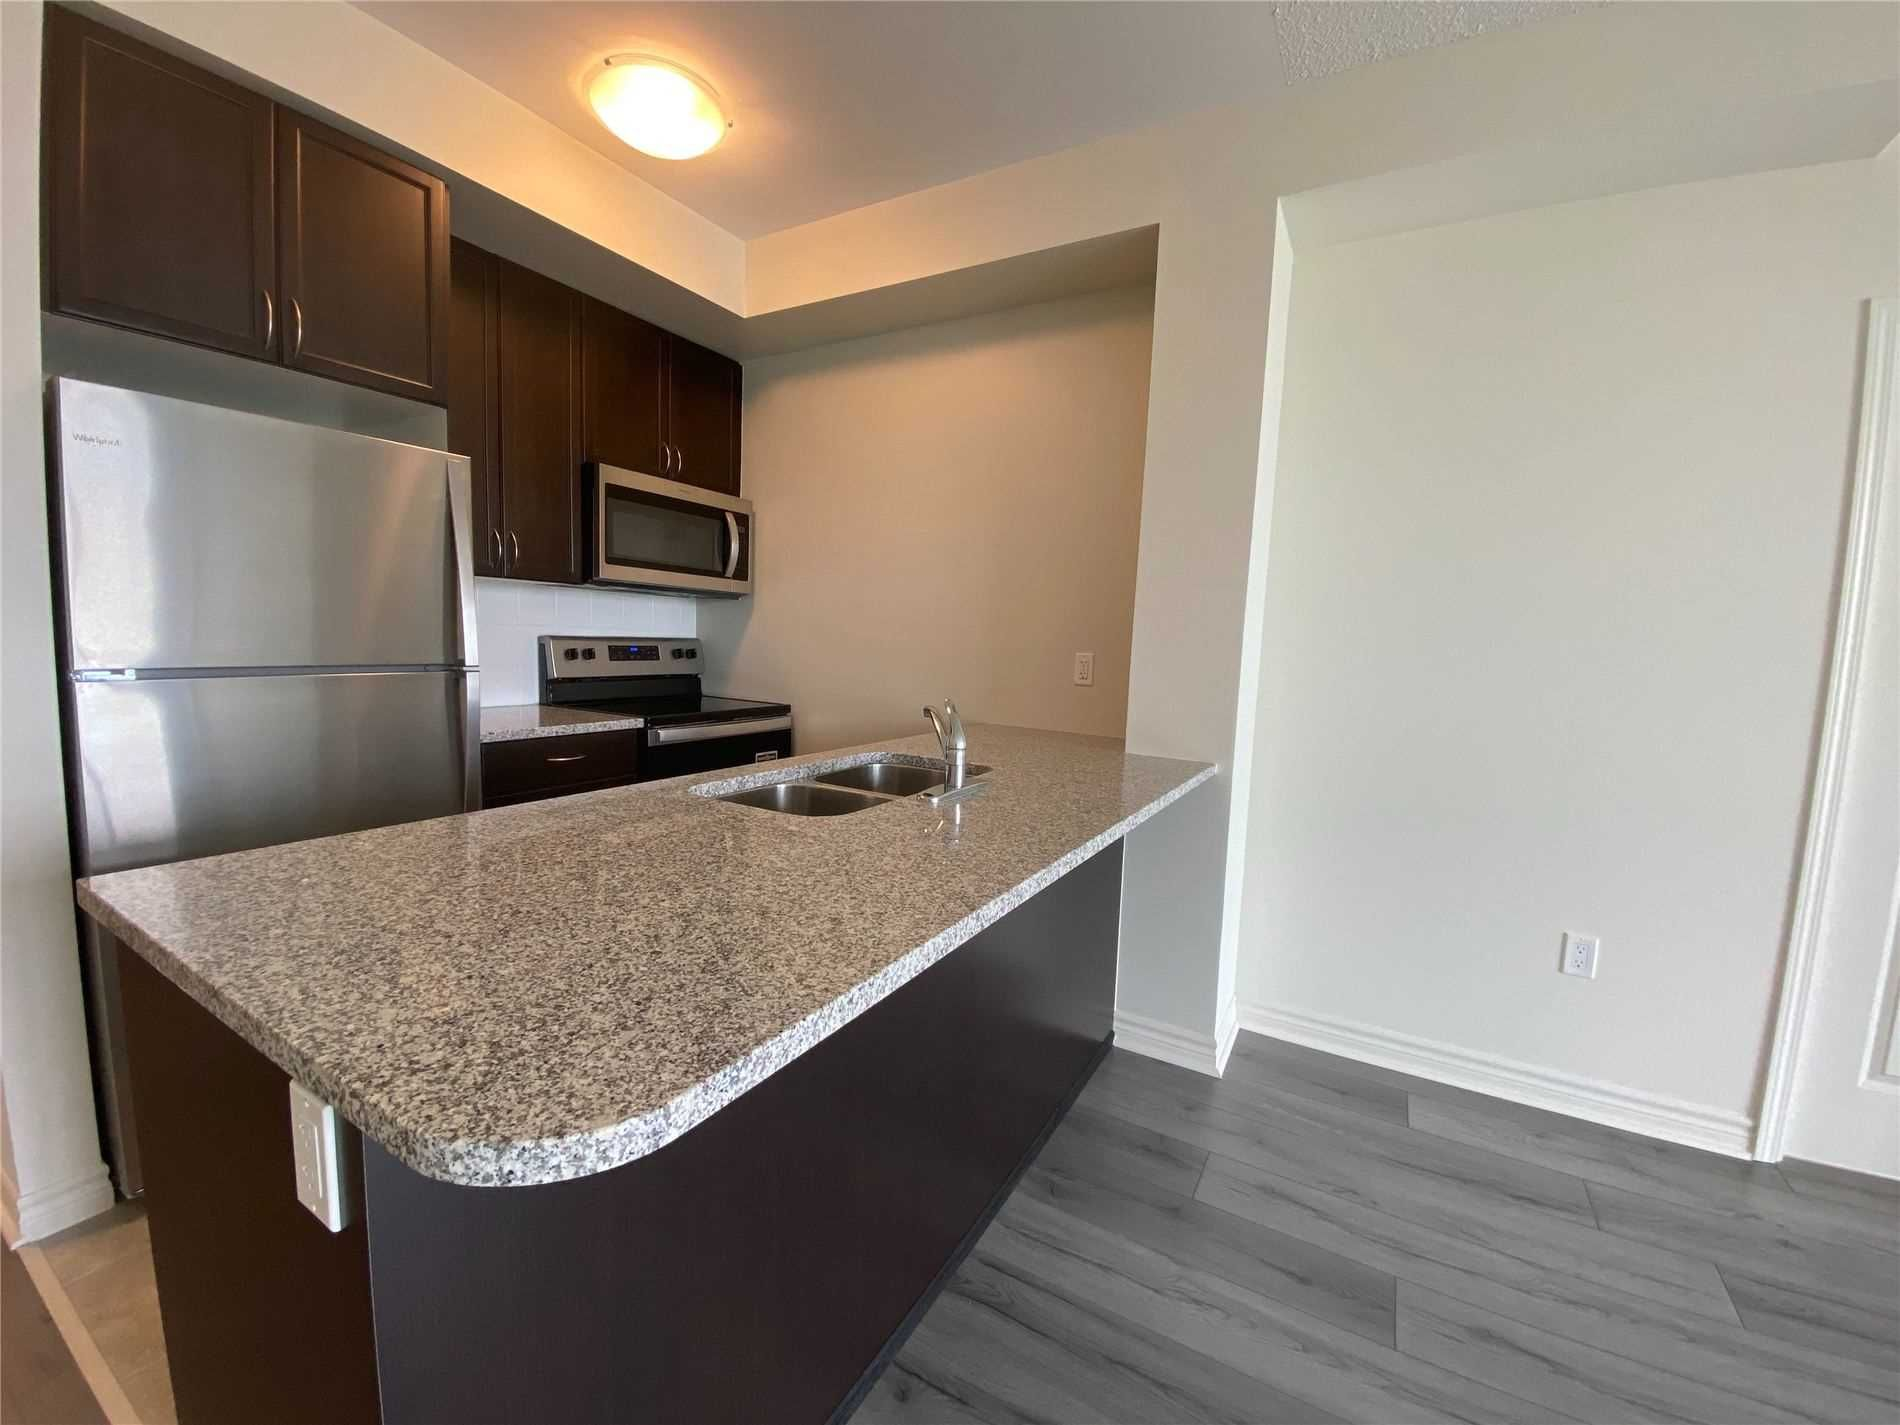 349 Rathburn Rd W, unit 817 for rent in Toronto - image #2